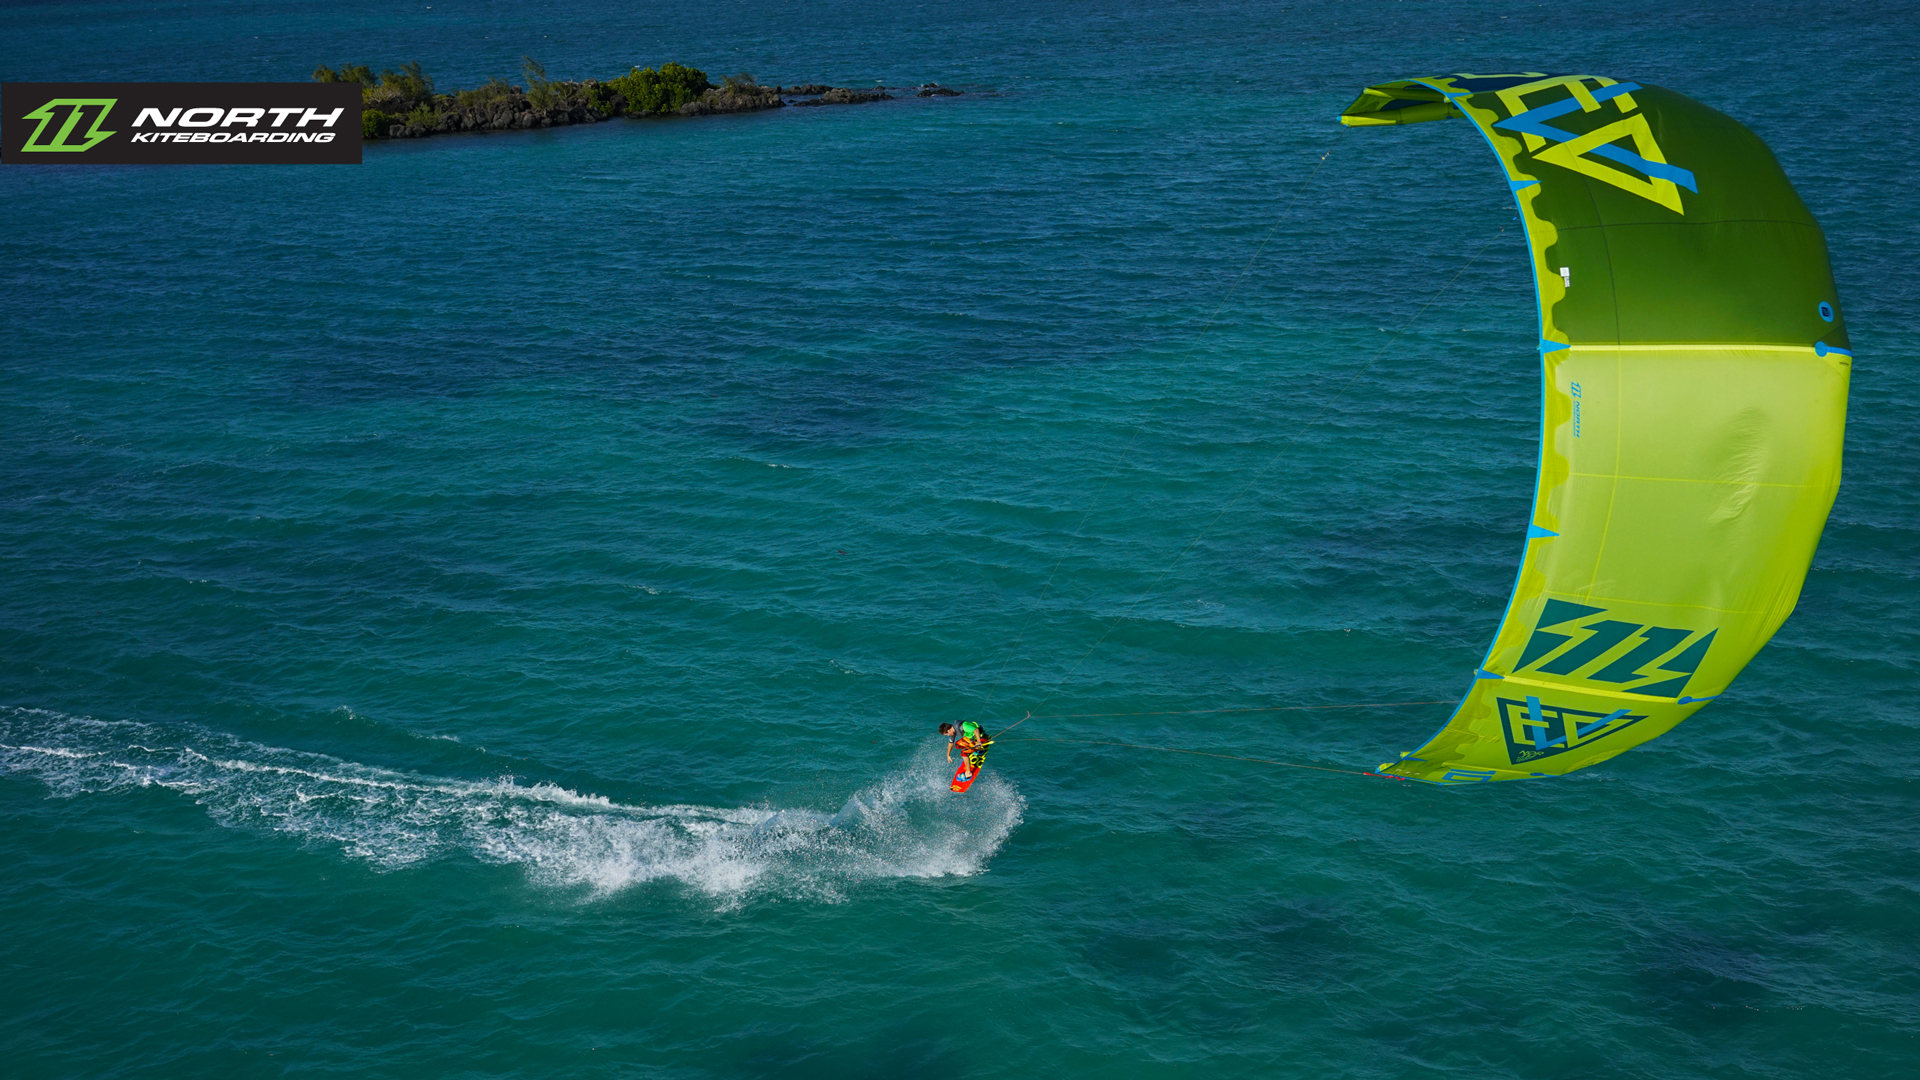 kitesurf wallpaper image - The 2015 North Evo as seen from above - kitesurfing - in resolution: High Definition - HD 16:9 1920 X 1080